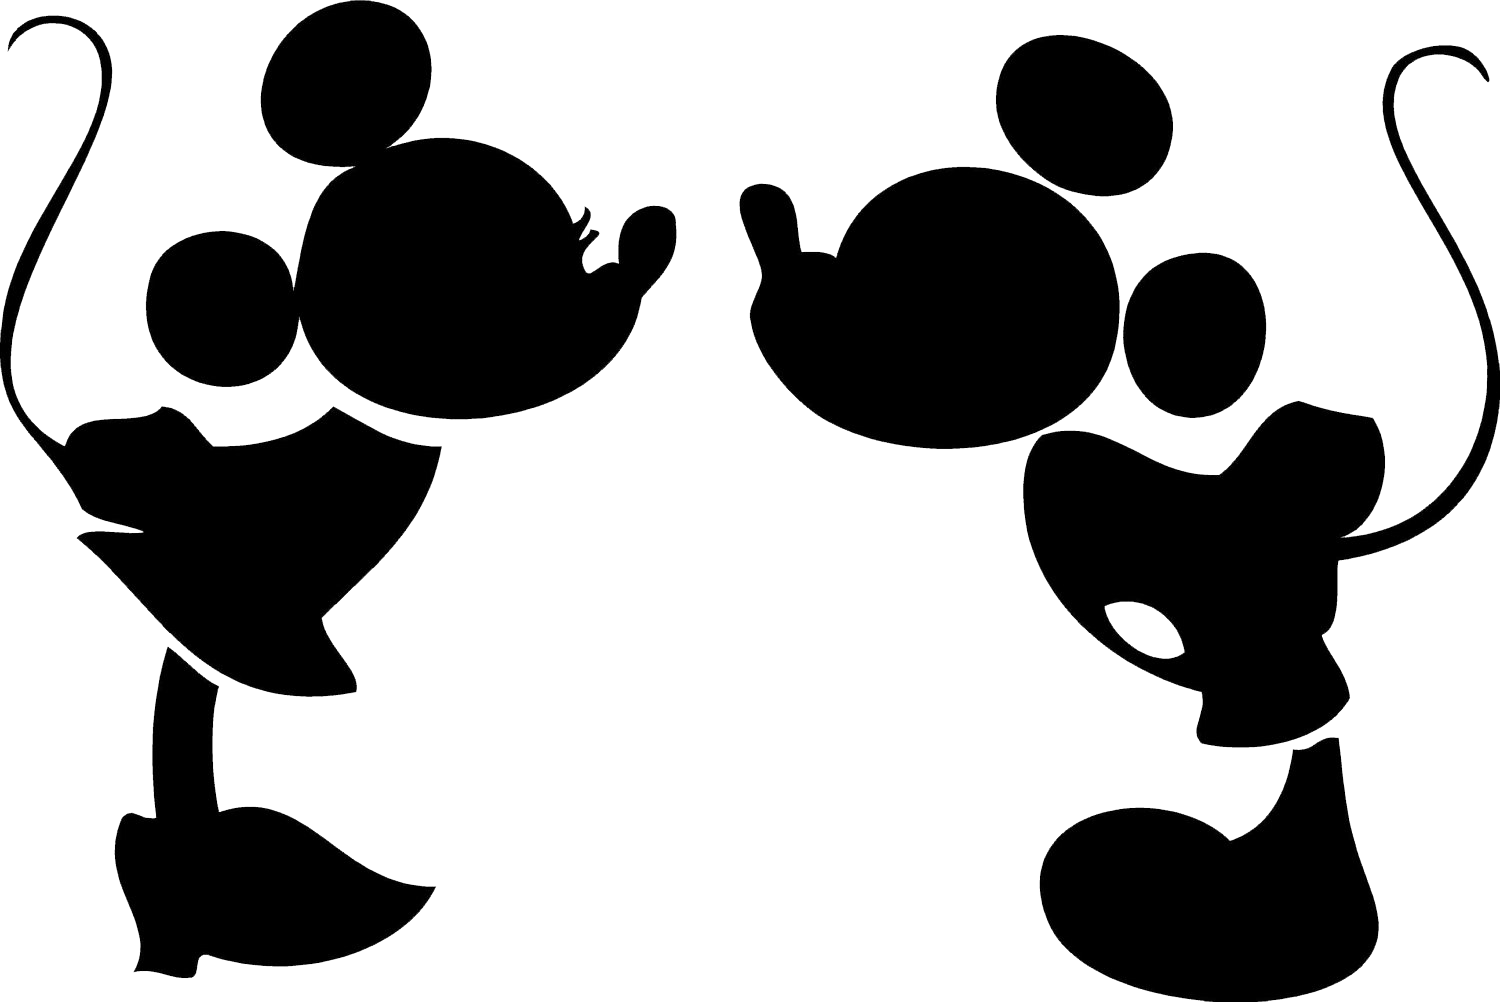 Mickey mouse head silhouette png. Please looking for help